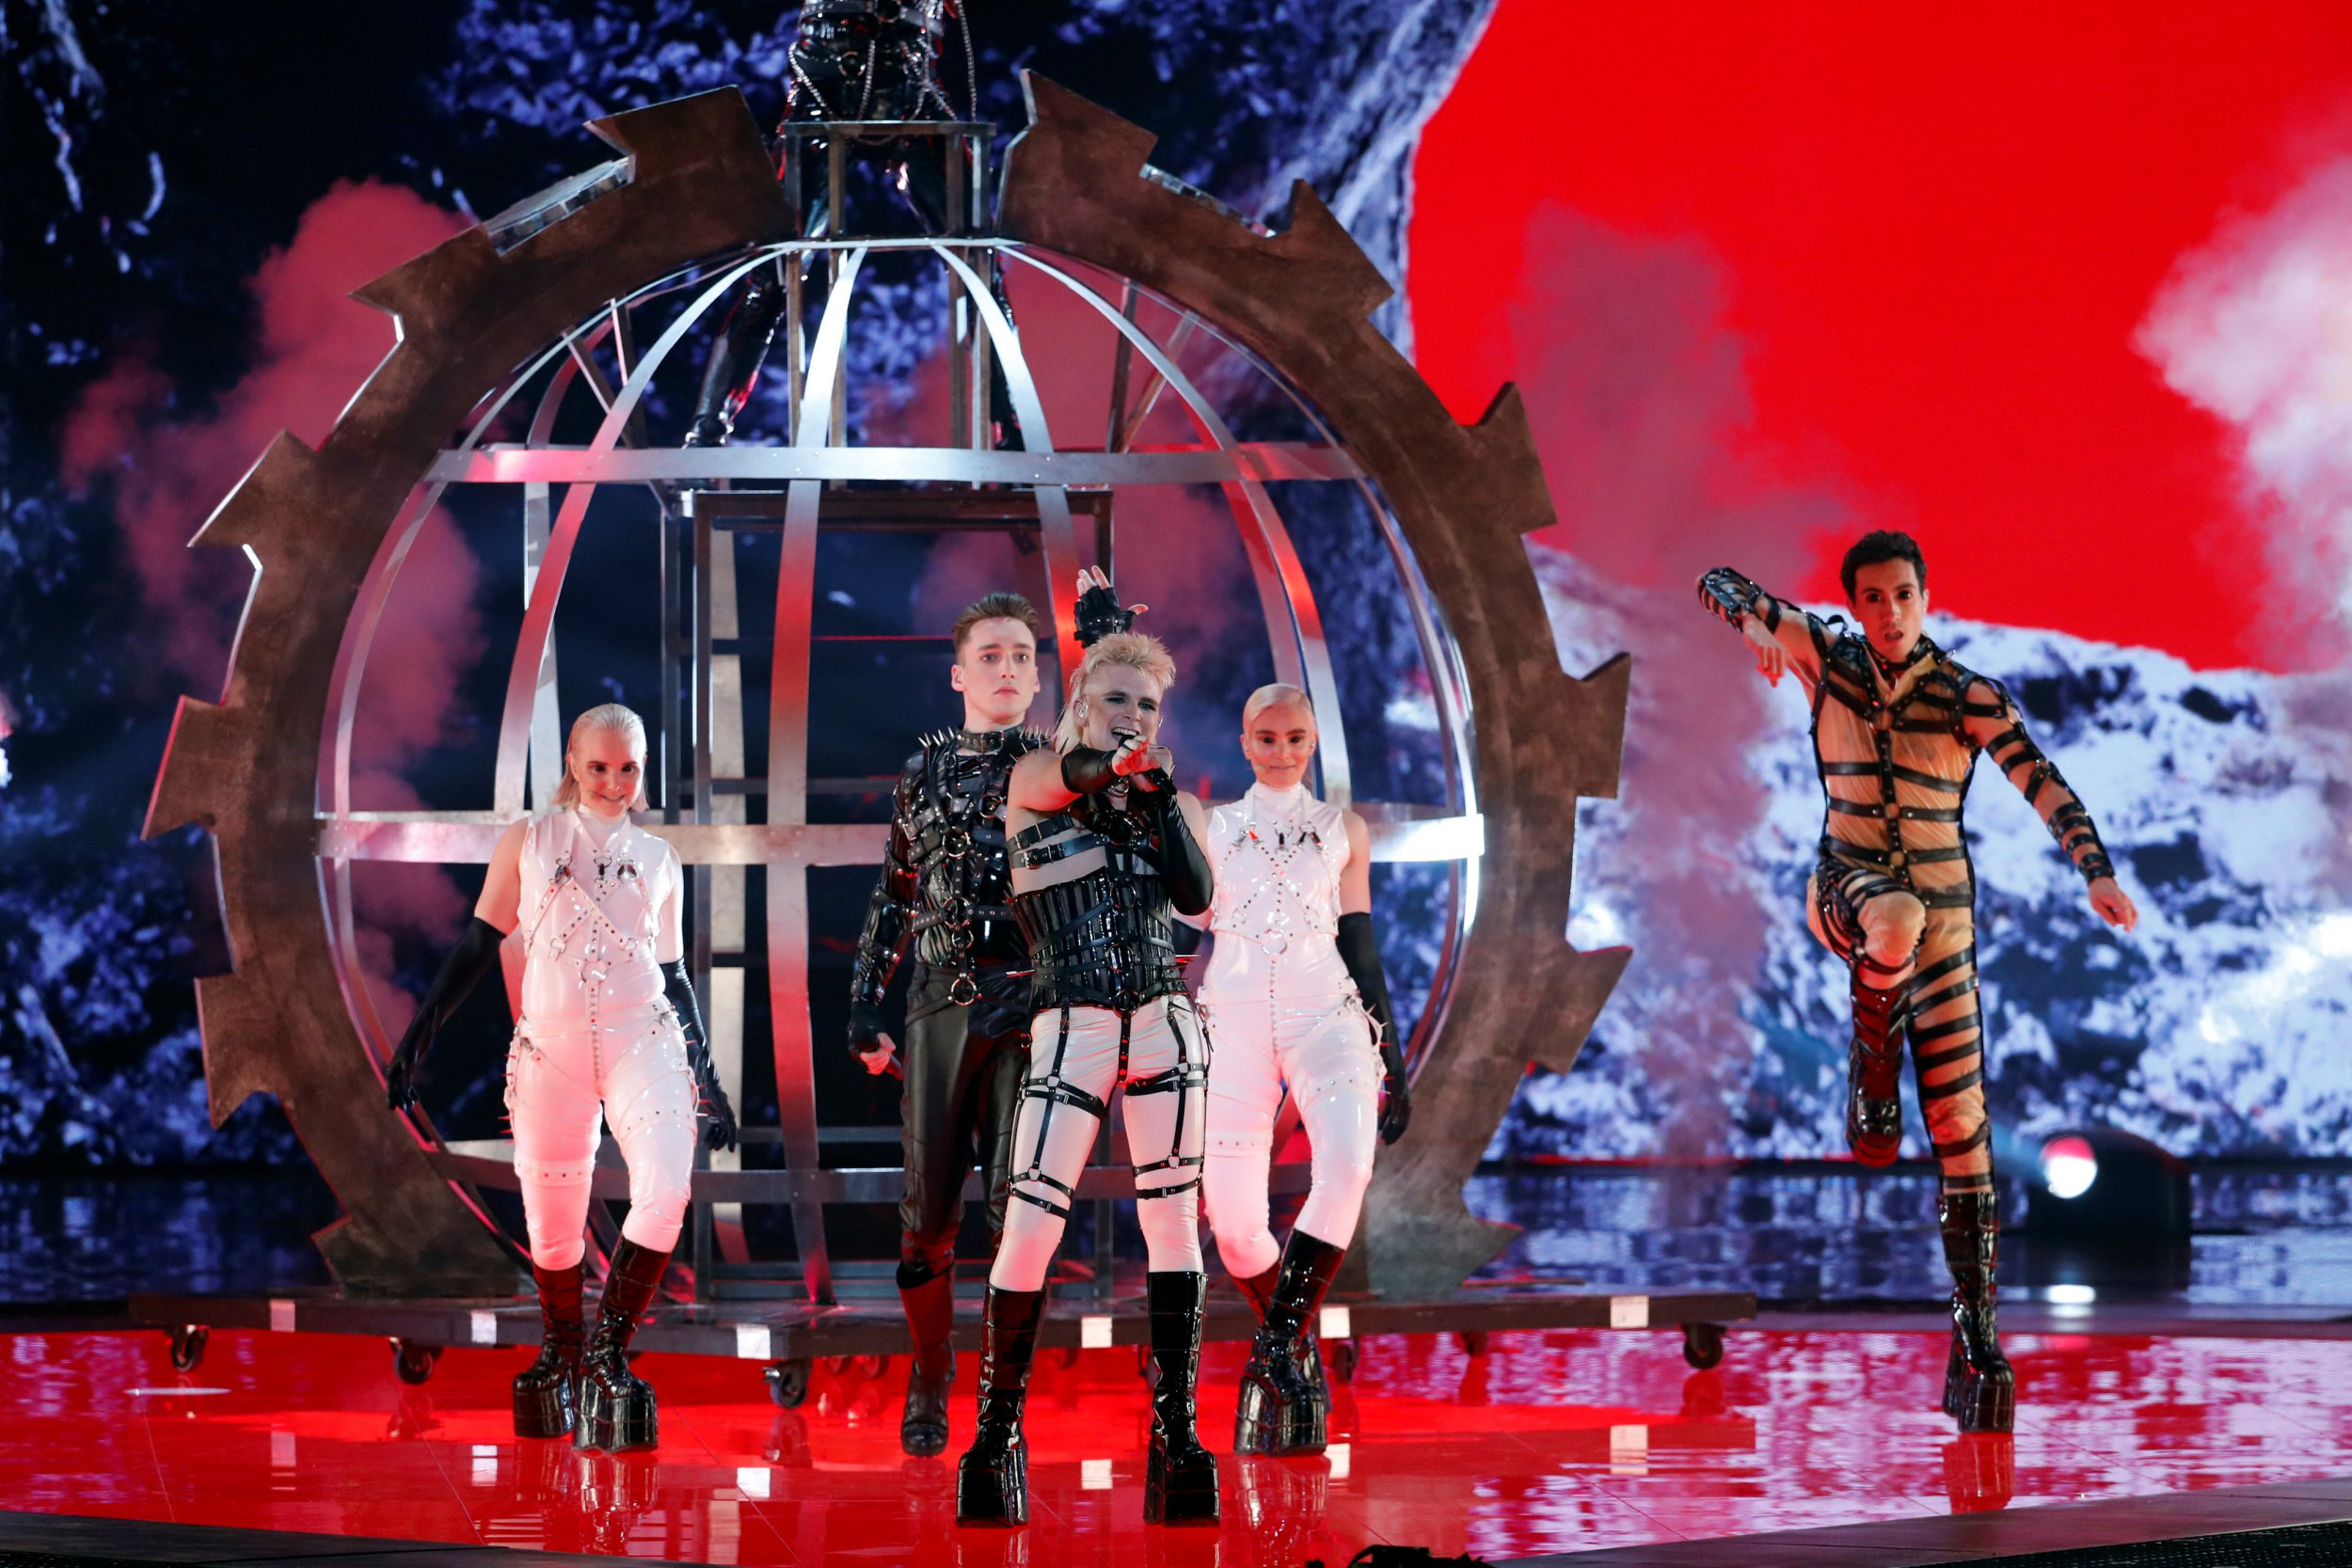 Eurovision organisers speak out on Hatari's Palestine protest: 'The consequences will be discussed'